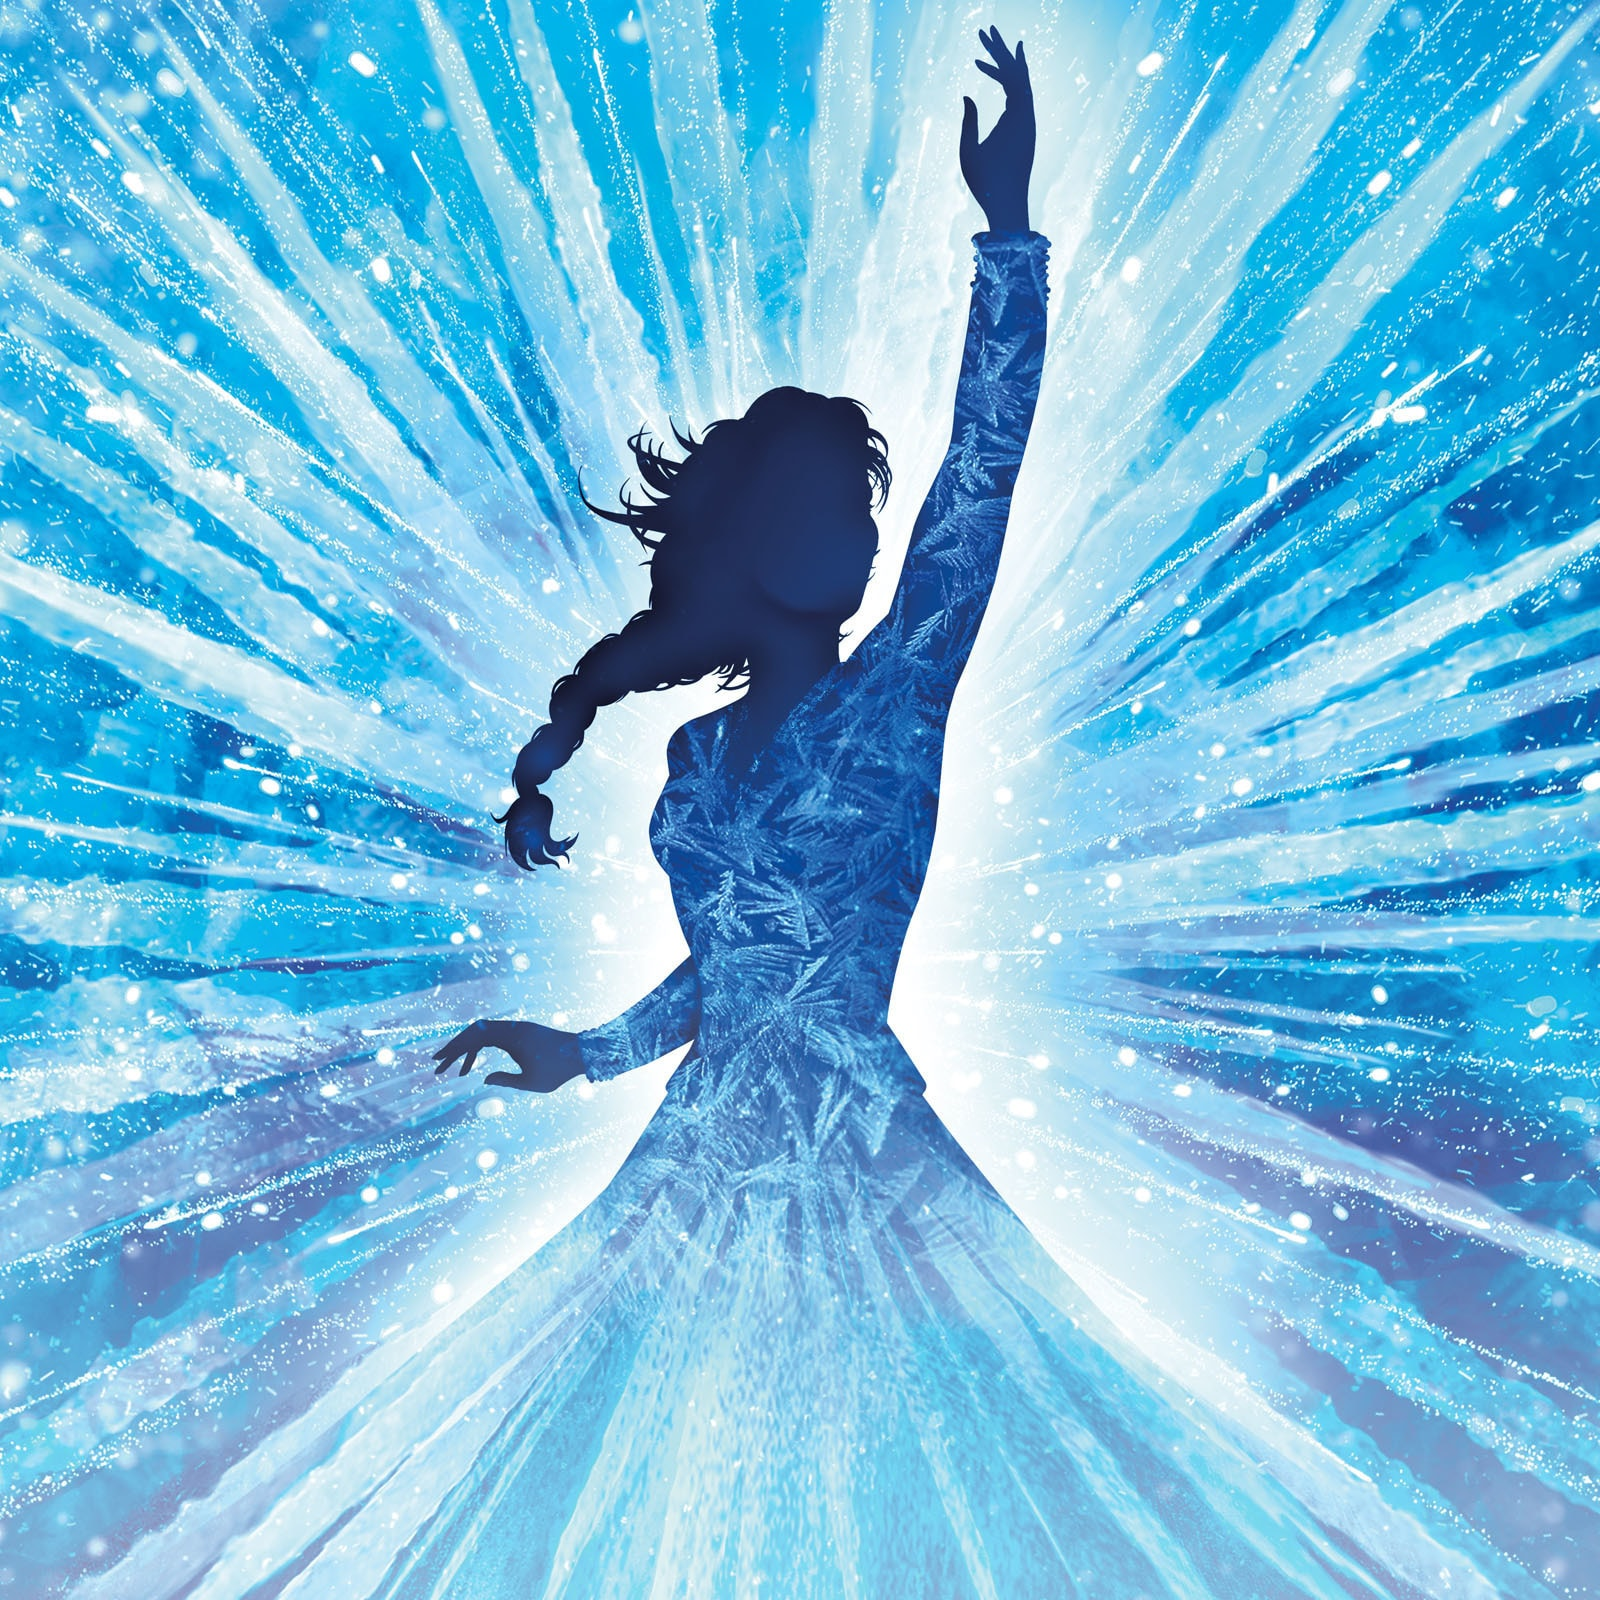 Silhouette of Elsa holding her arm up, with blue icicles surrounding her